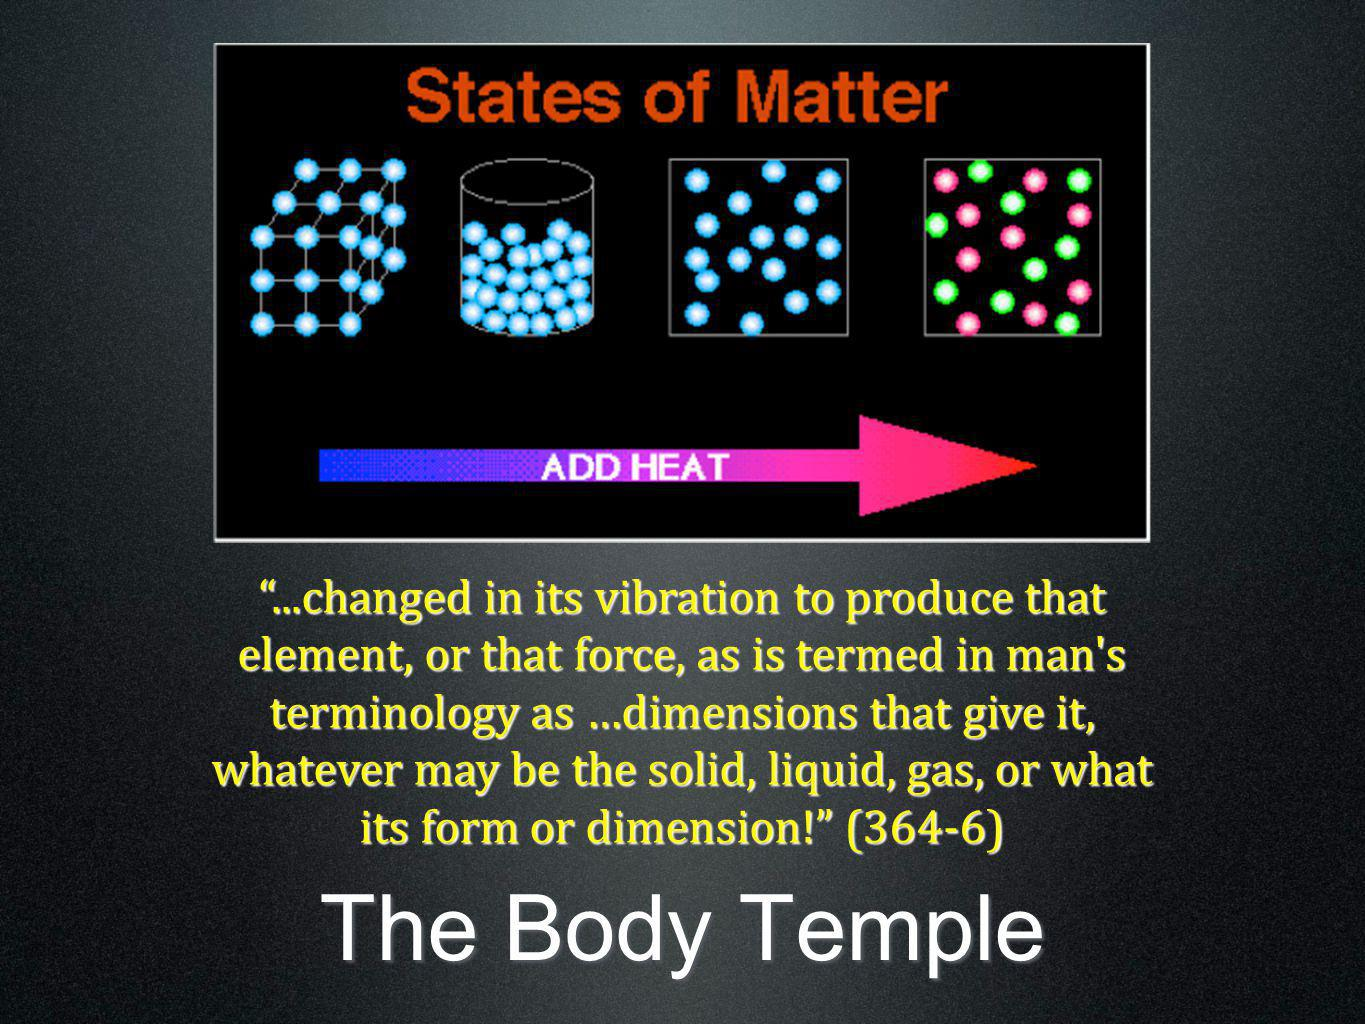 ...changed in its vibration to produce that element, or that force, as is termed in man s terminology as …dimensions that give it, whatever may be the solid, liquid, gas, or what its form or dimension! (364-6)